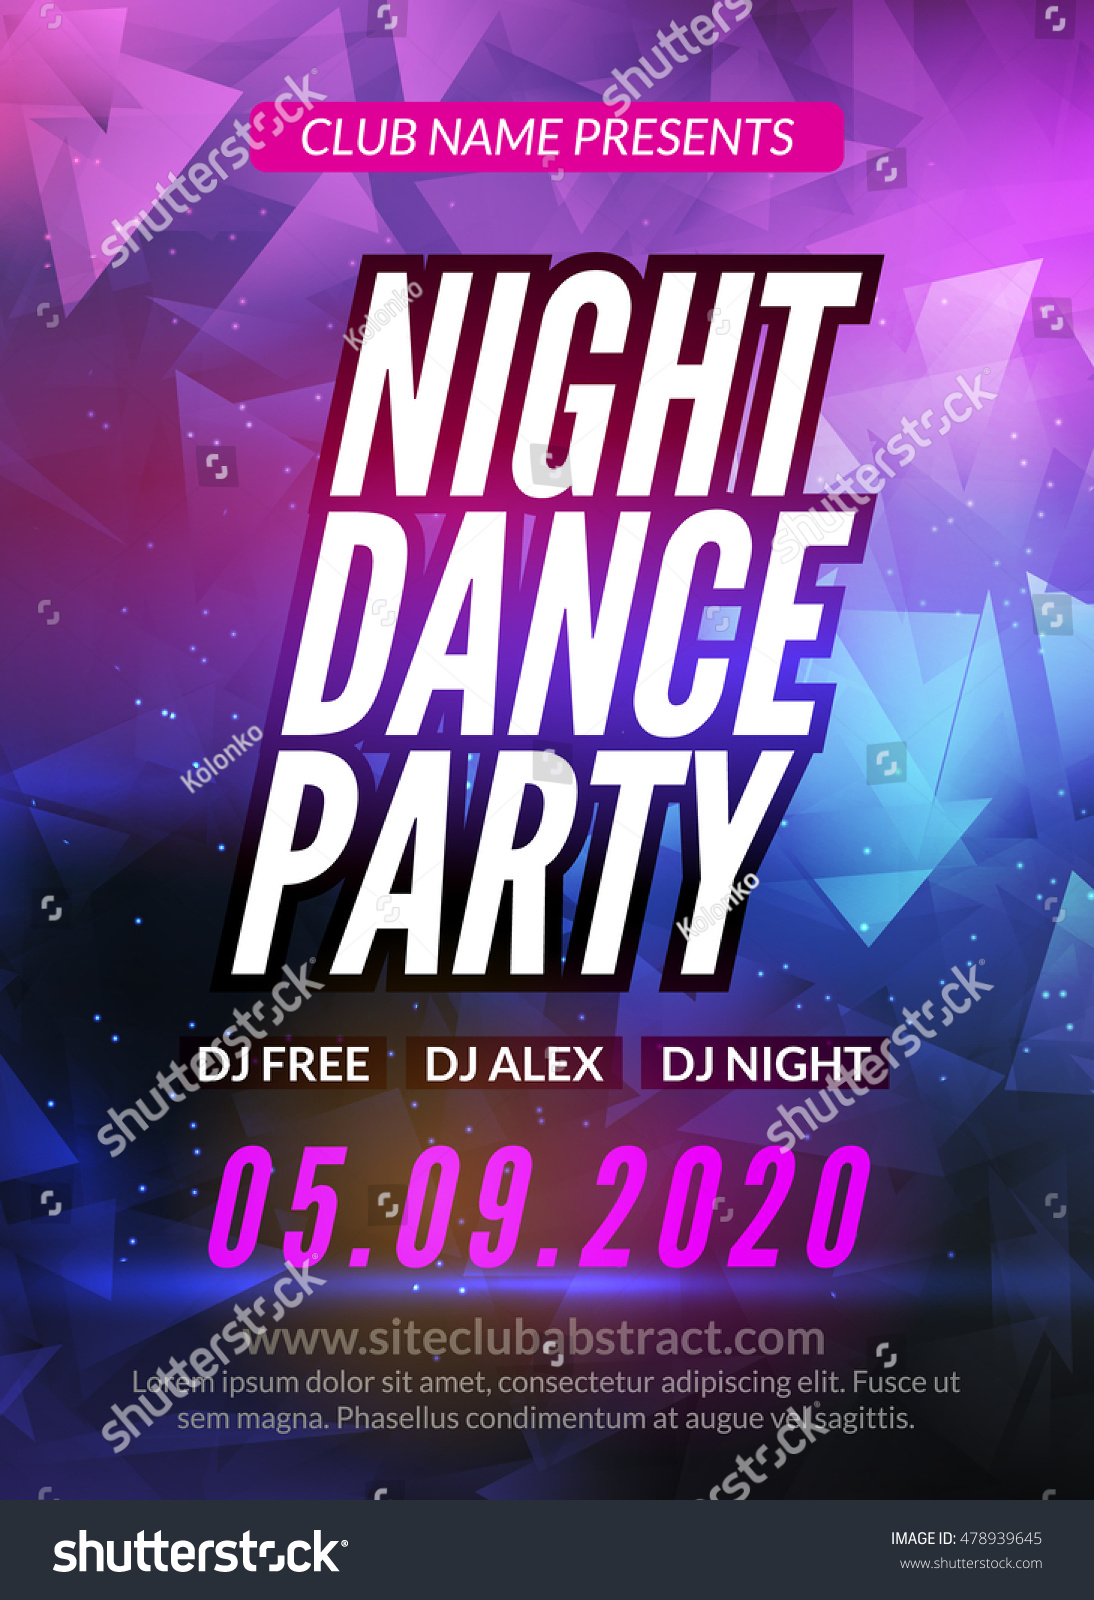 dance party poster template night dance のベクター画像素材